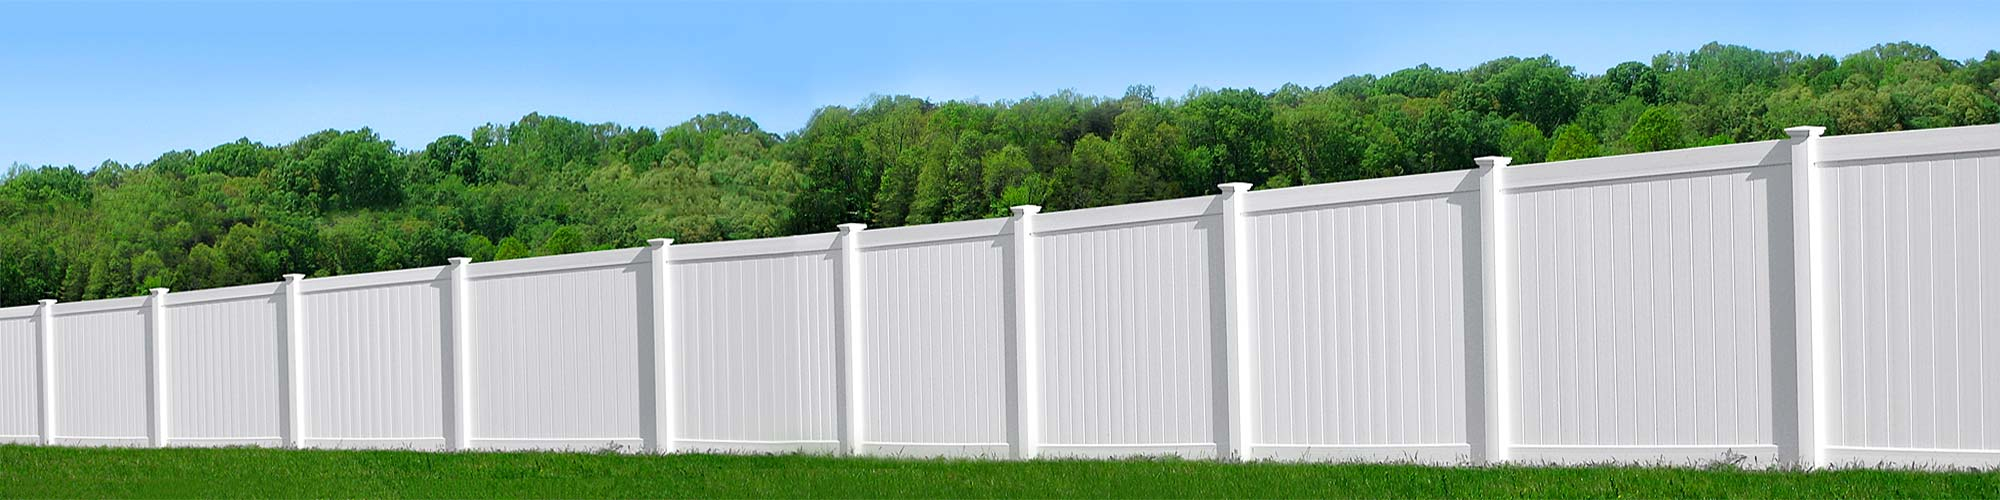 Rainier Vinyl Privacy Fence Vinyl Fence Wholesaler with regard to sizing 2000 X 500